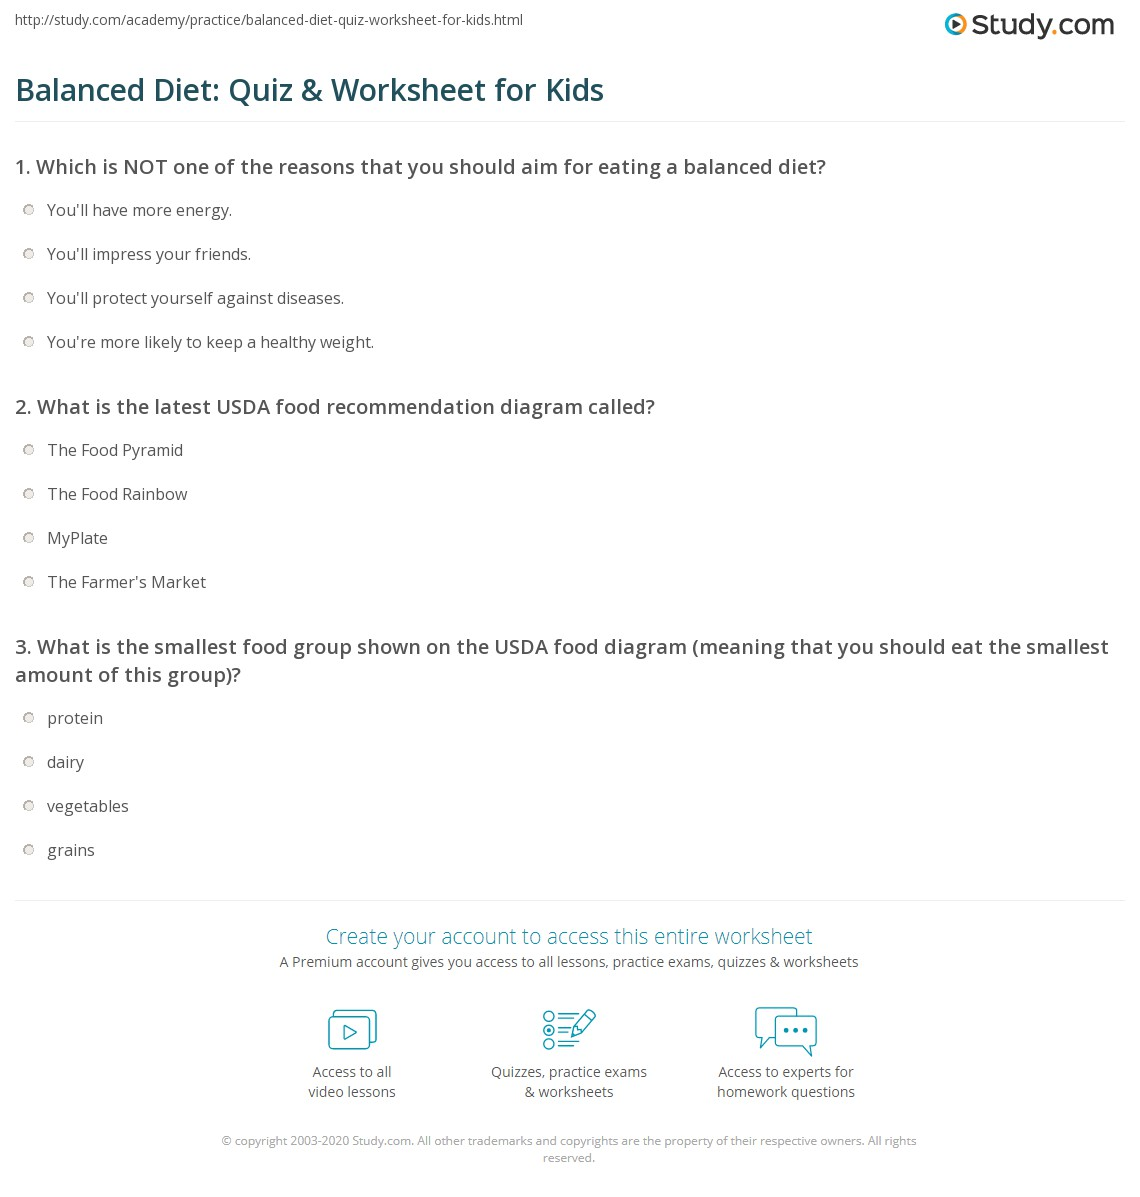 Balanced Diet: Quiz & Worksheet for Kids | Study com